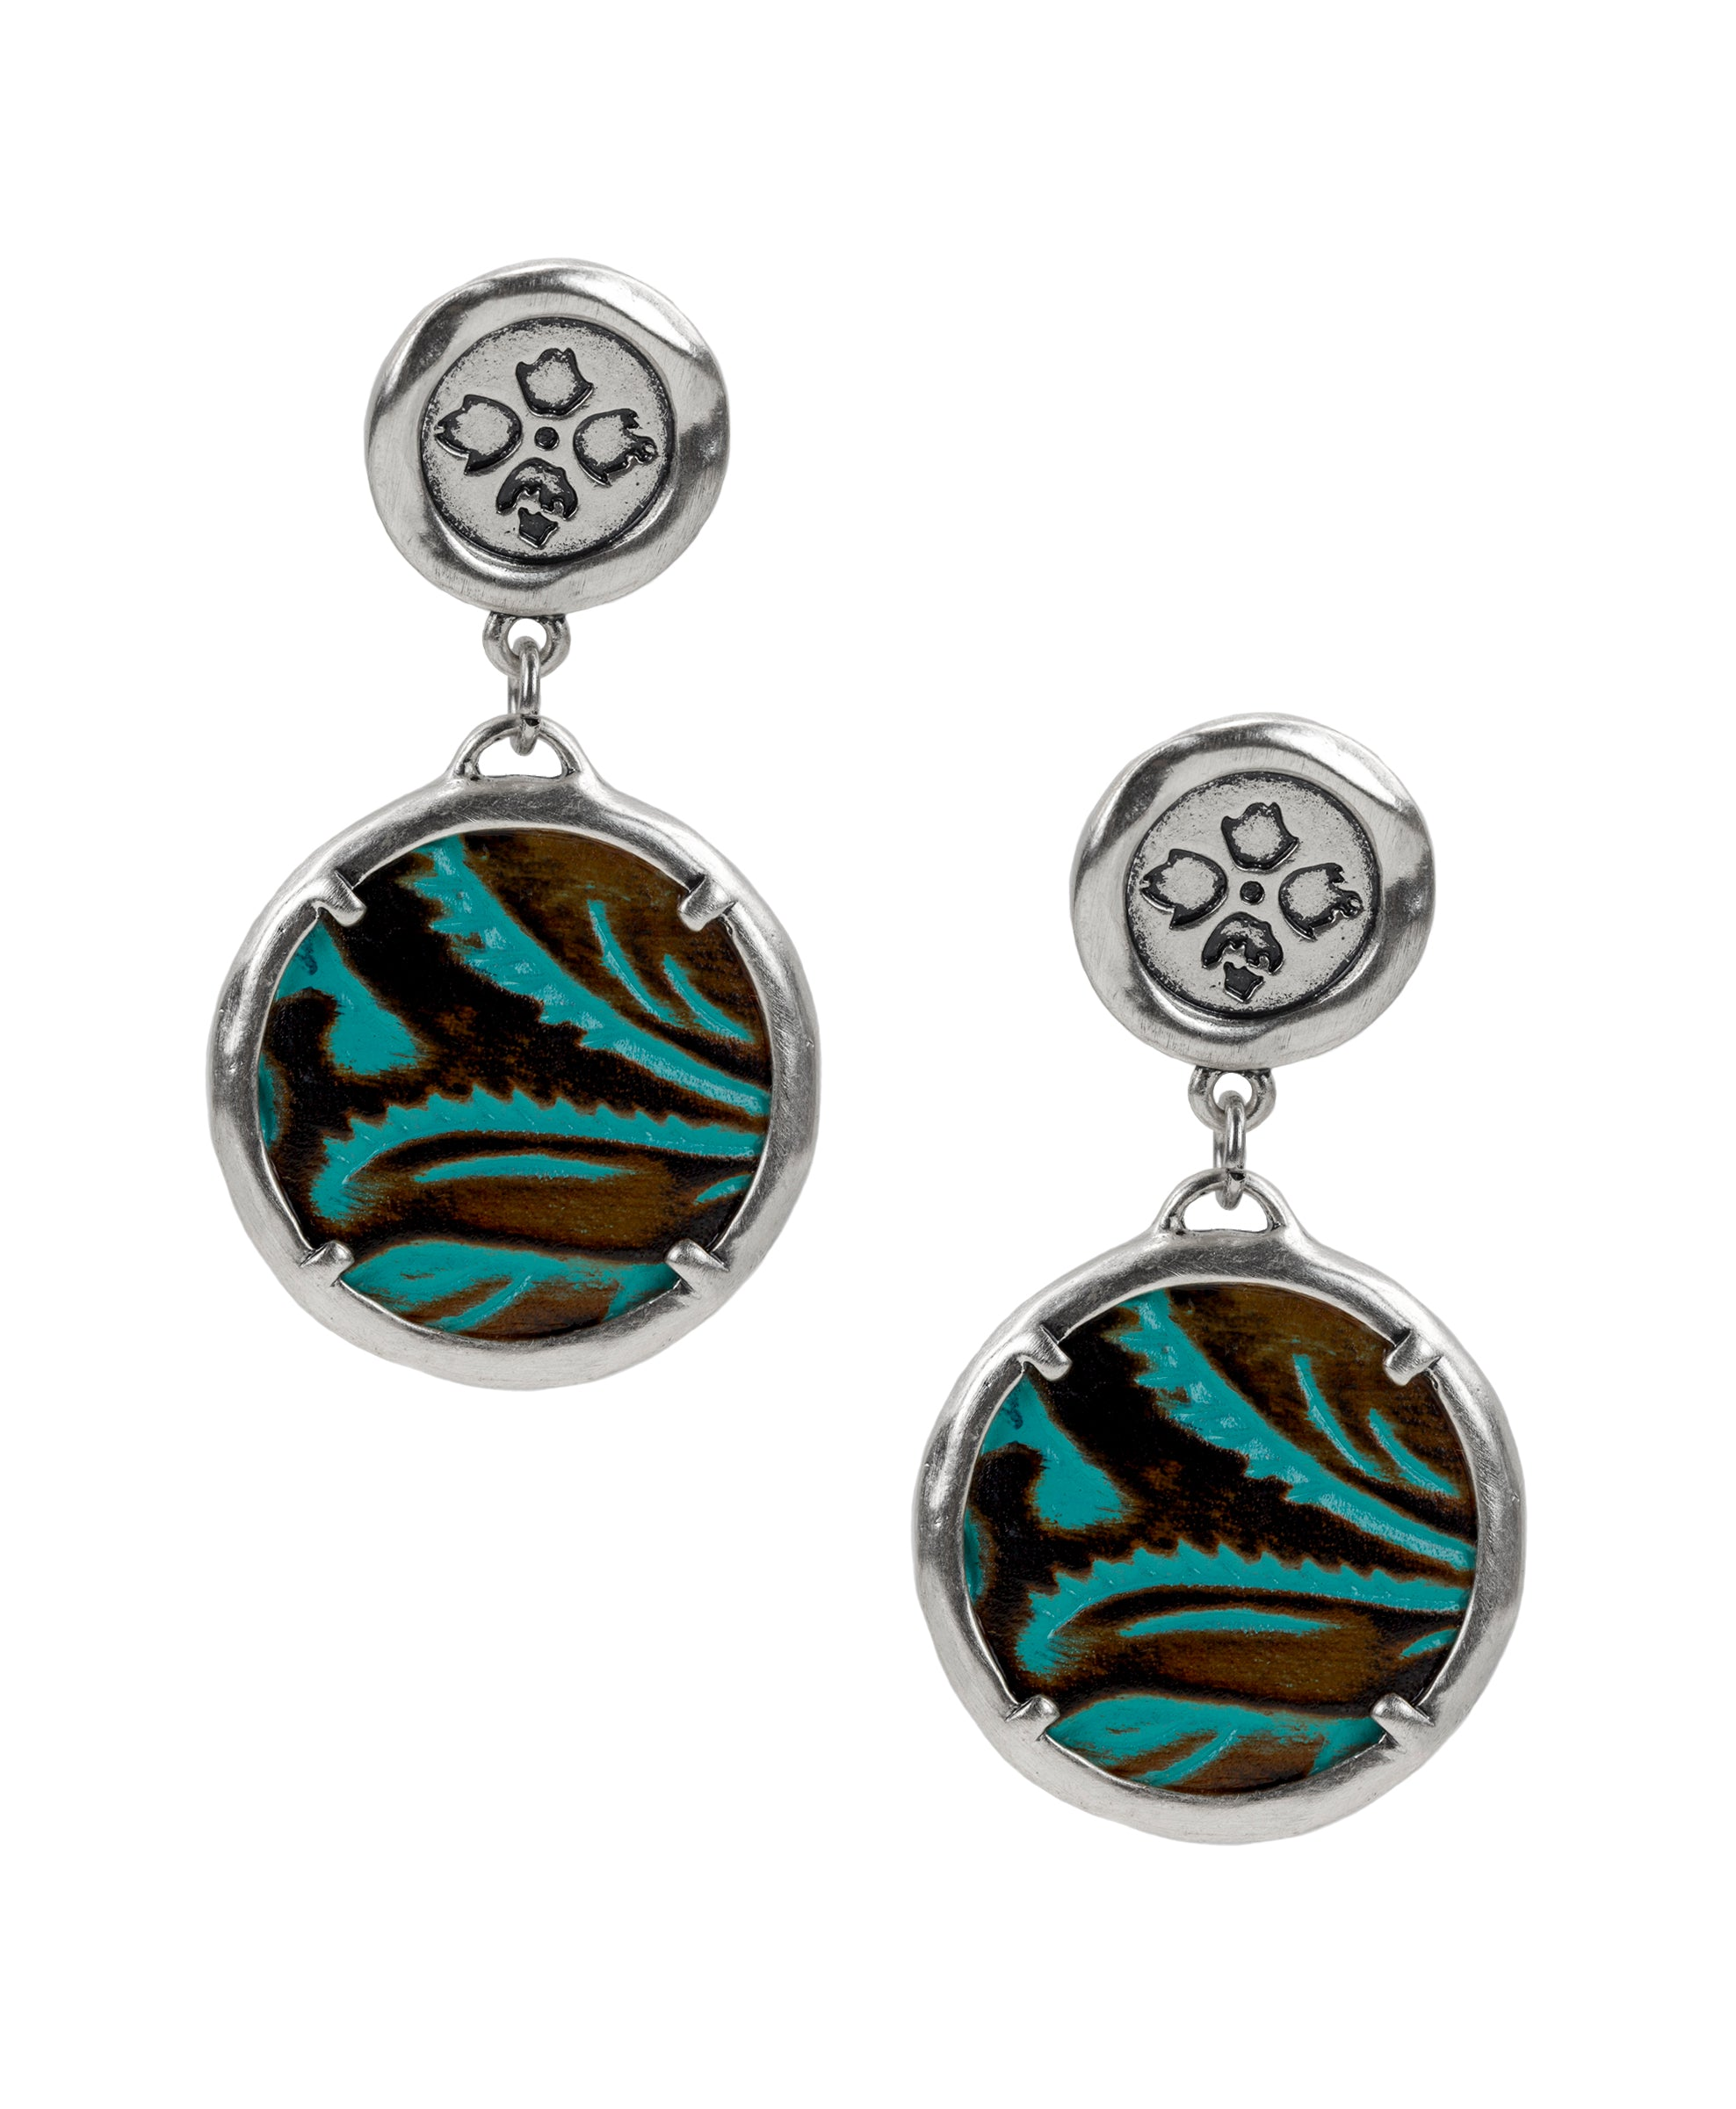 Leather Inset Double Drop Earrings - Tooled Turquoise